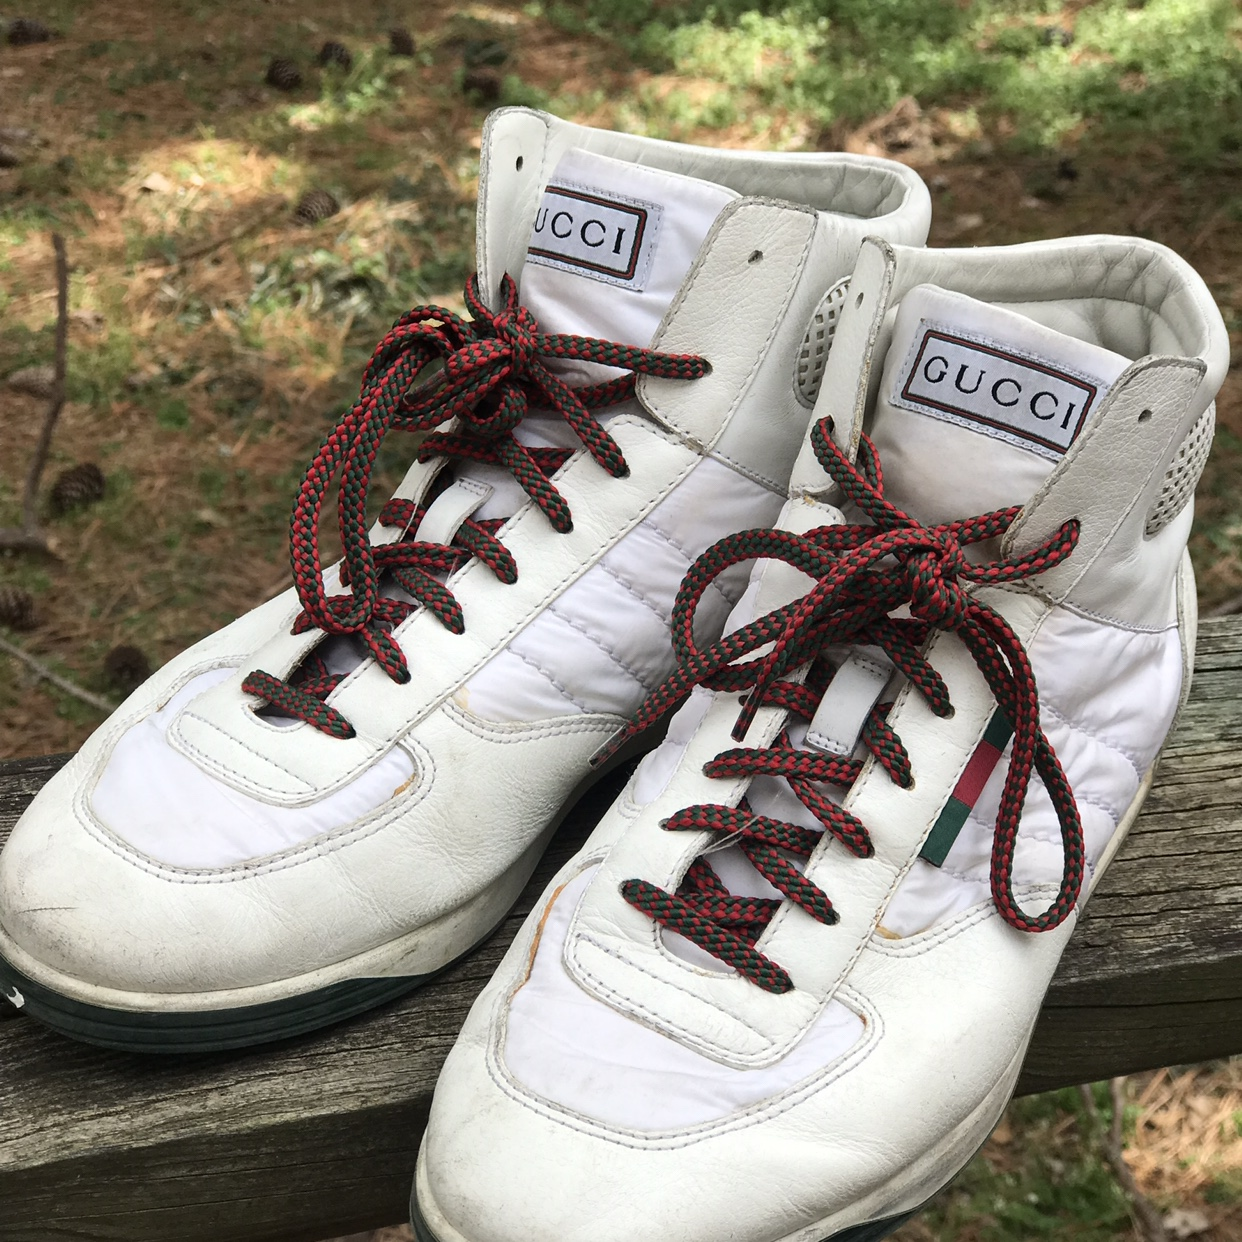 Vintage Gucci Sneakers. SZ. 9. Wore on